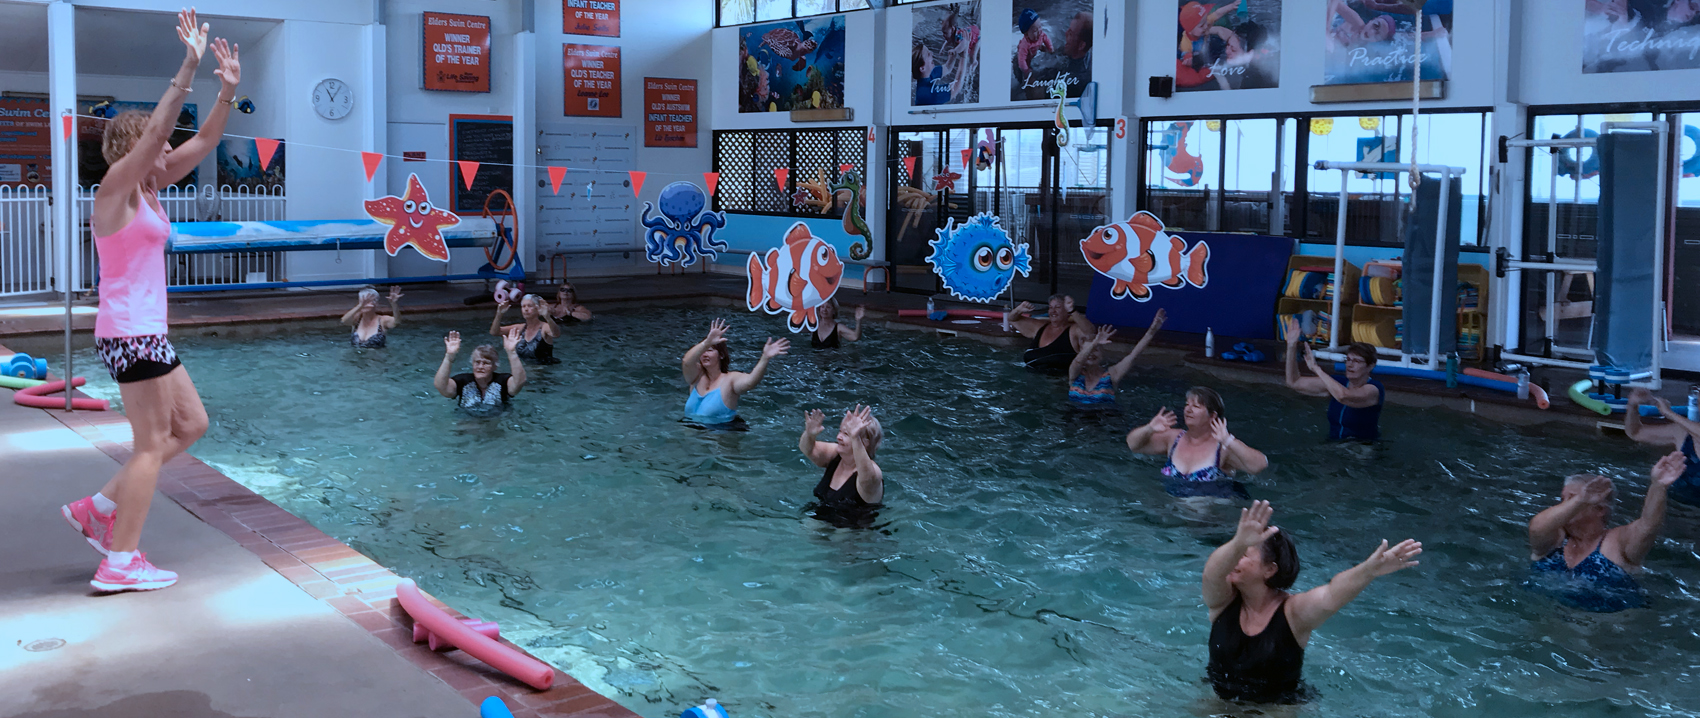 Underwater photo of aerobic exercise class doing their routines